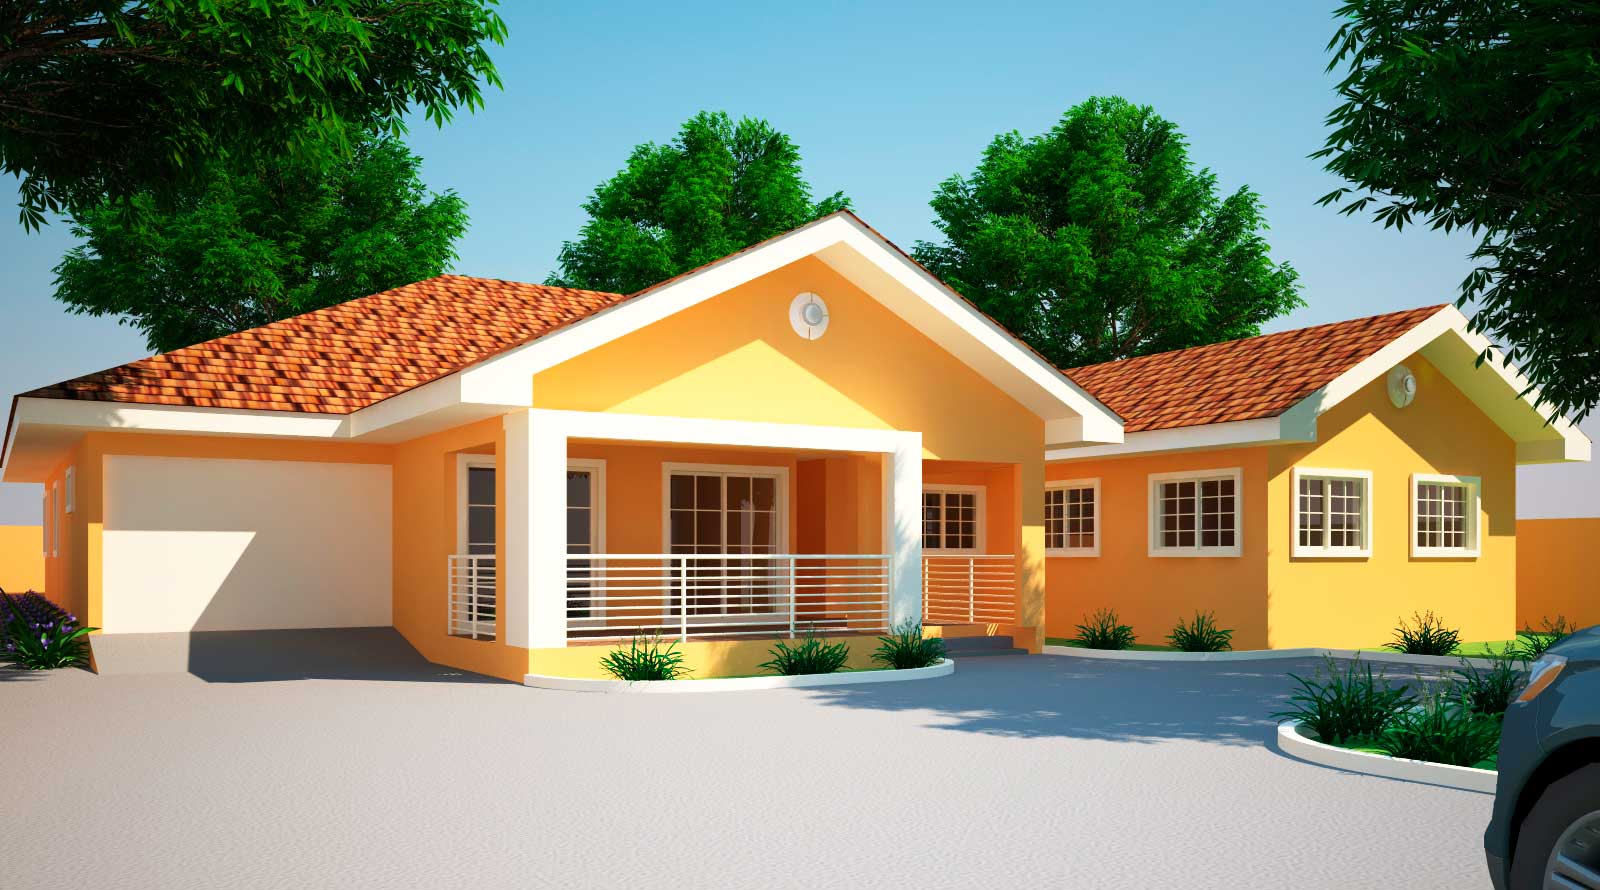 House Plans Ghana Jonat Bedroom Plan - Home Plans ...